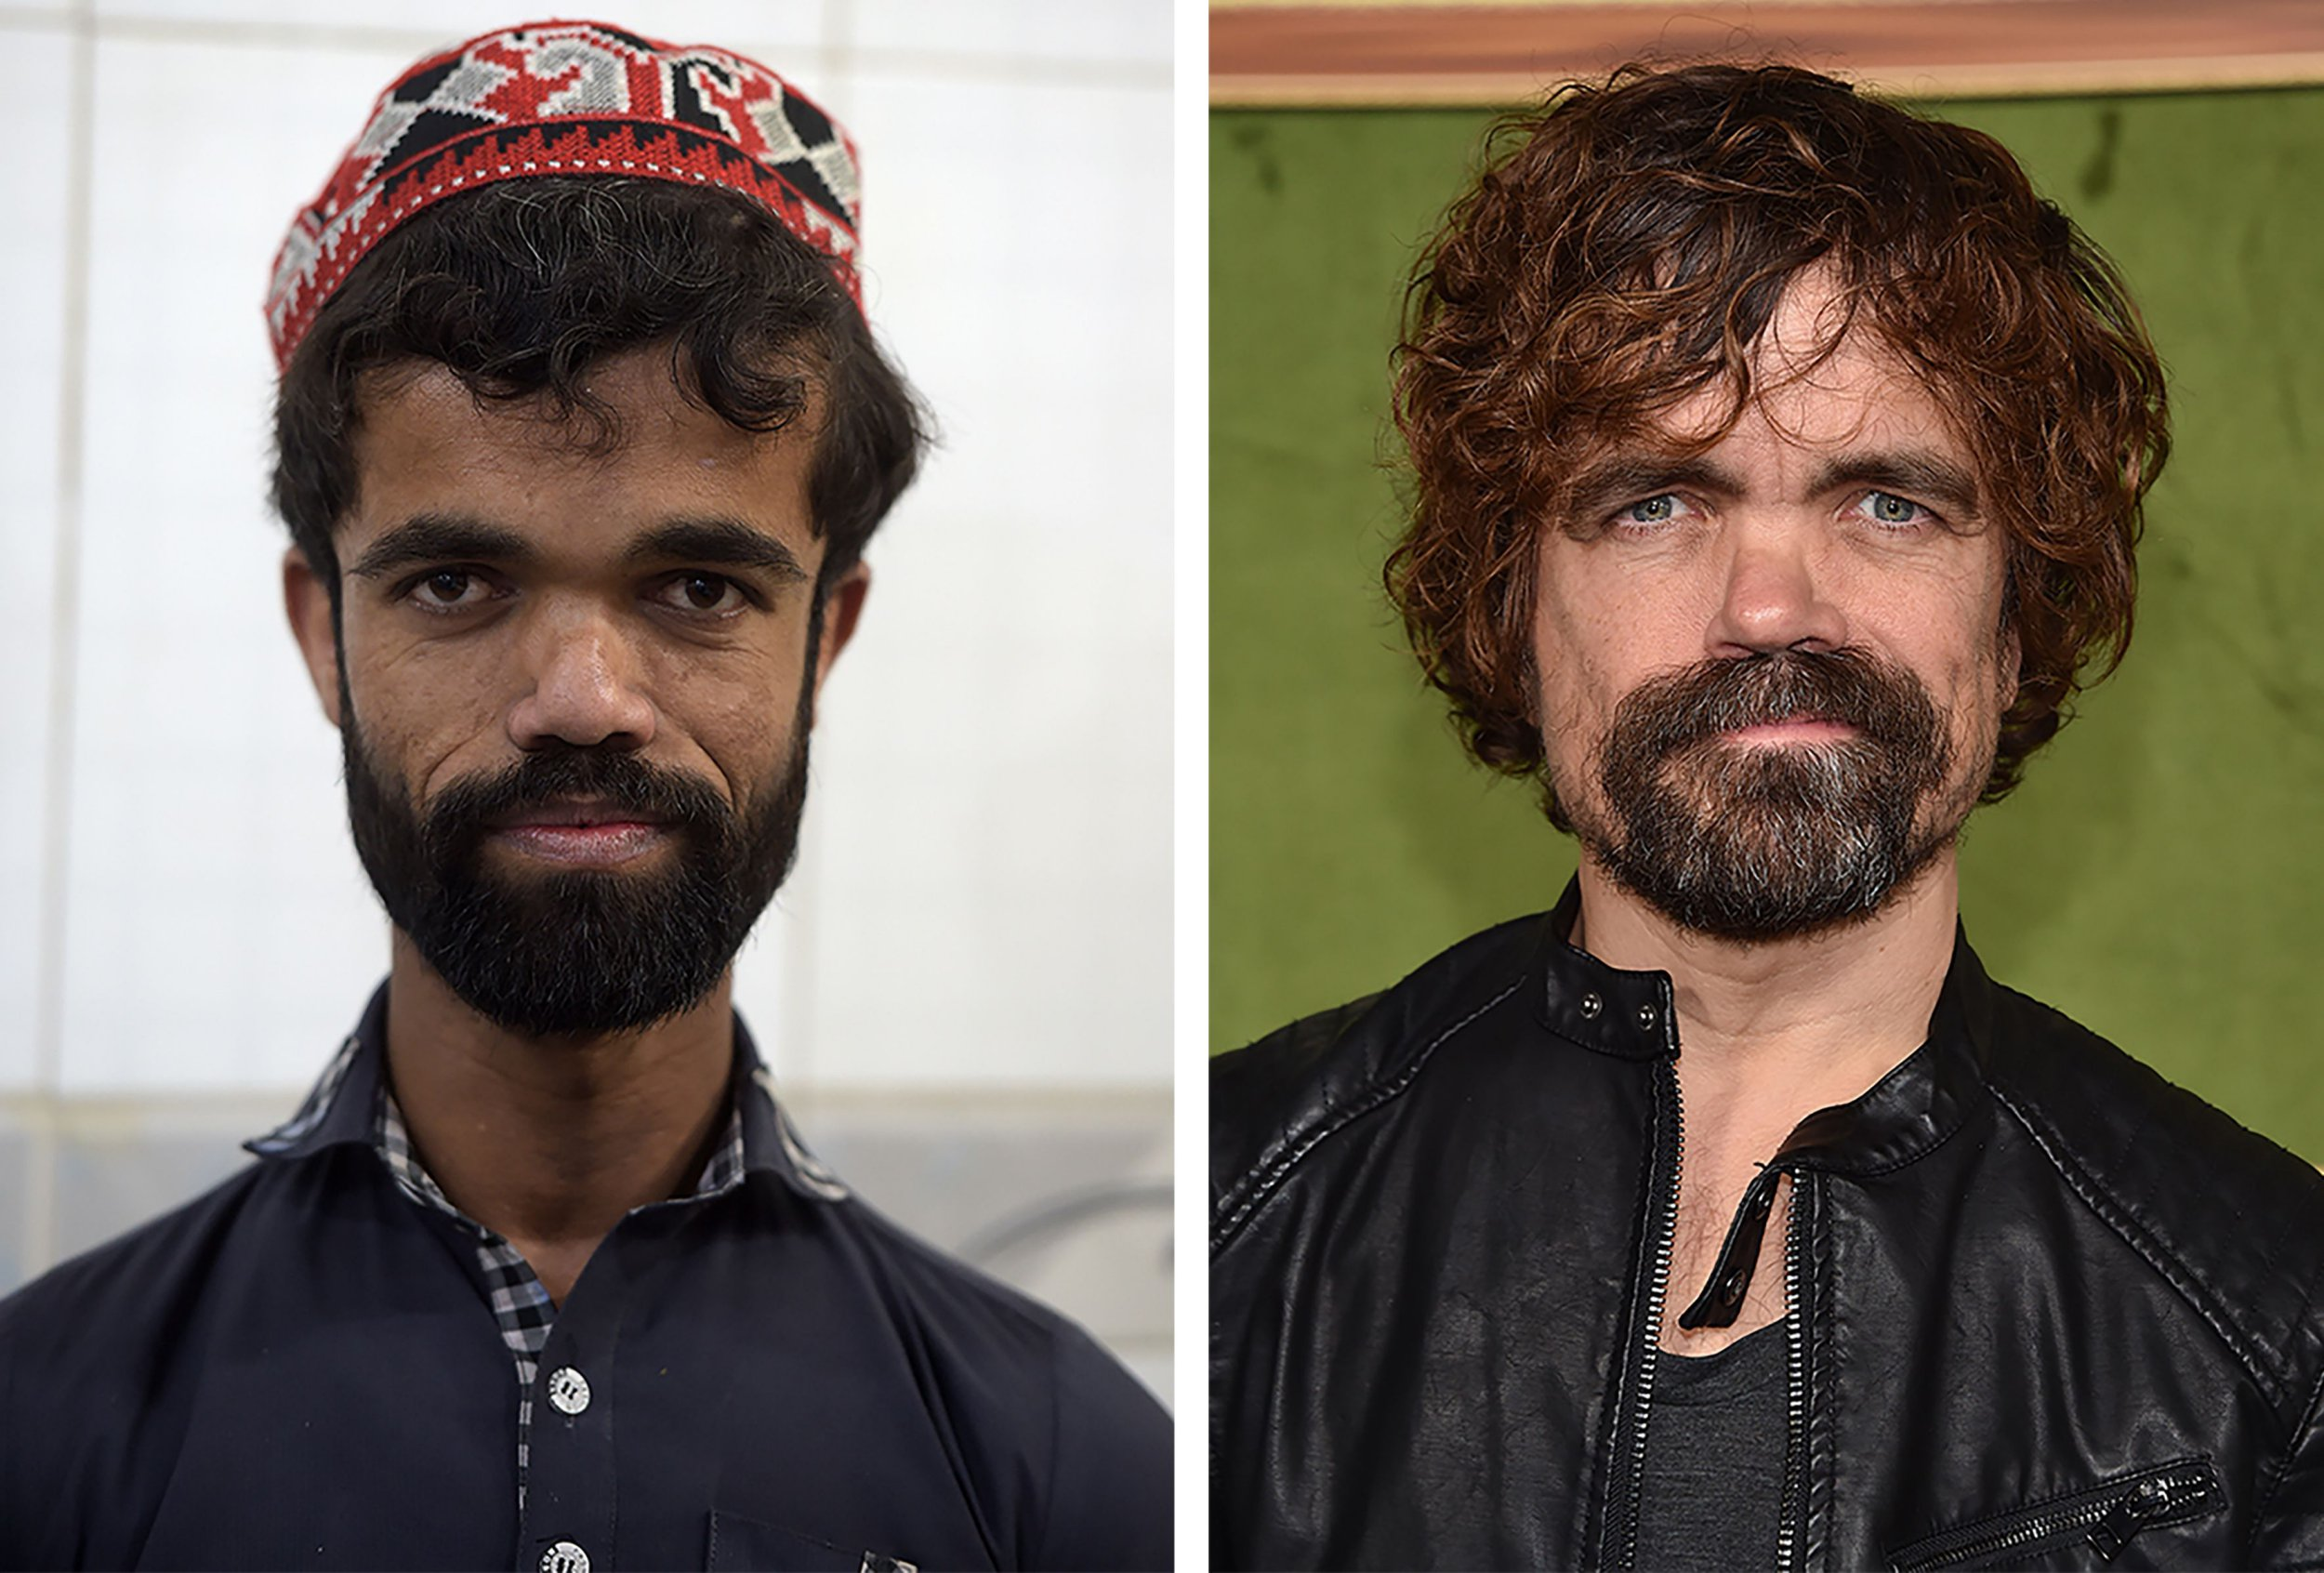 "(COMBO) This photo combination created on March 14, 2019 shows (L) Pakistani waiter Rozi Khan posing for a photograph at Dilbar Hotel in Rawalpindi on February 22, (R) US actor Peter Dinklage at the HBO premiere of ""My Dinner With Herve"" at the Paramount Studios in Los Angeles on October 4, 2018. - Rozi Khan had never heard of the Game of Thrones -- or its hugely popular character Tyrion Lannister -- until his striking resemblance to the dwarf anti-hero got heads turning at home. (Photo by Aamir QURESHI and Chris DELMAS / AFP) / To go with PAKISTAN-LIFESTYLE-TELEVISION-ENTERTAINMENTAAMIR QURESHI,CHRIS DELMAS/AFP/Getty Images"